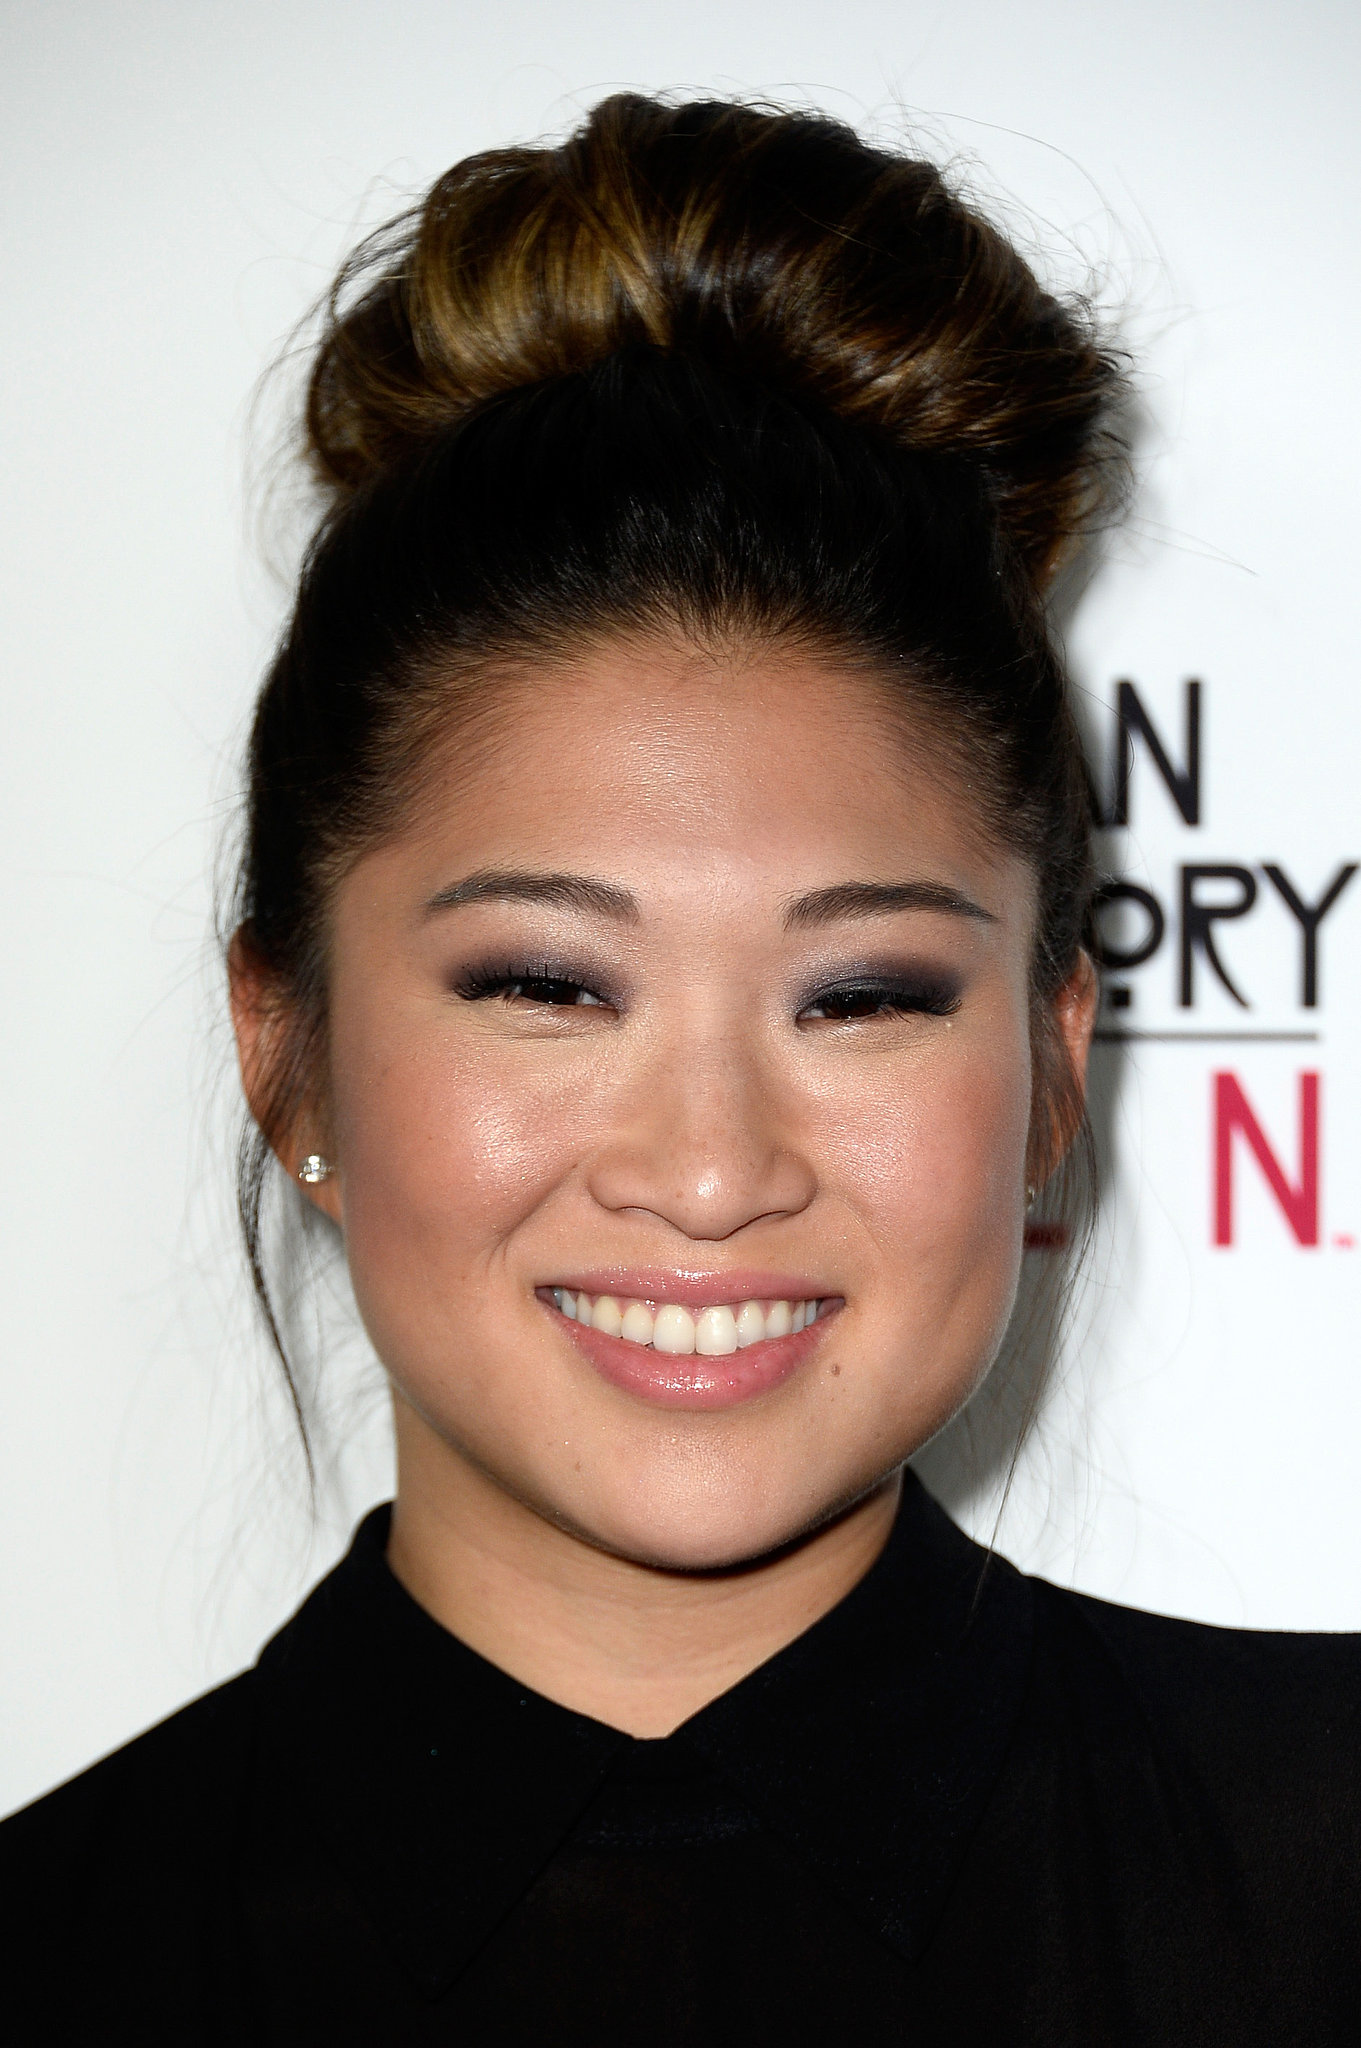 The 31-year old daughter of father (?) and mother(?), 163 cm tall Jenna Ushkowitz in 2017 photo